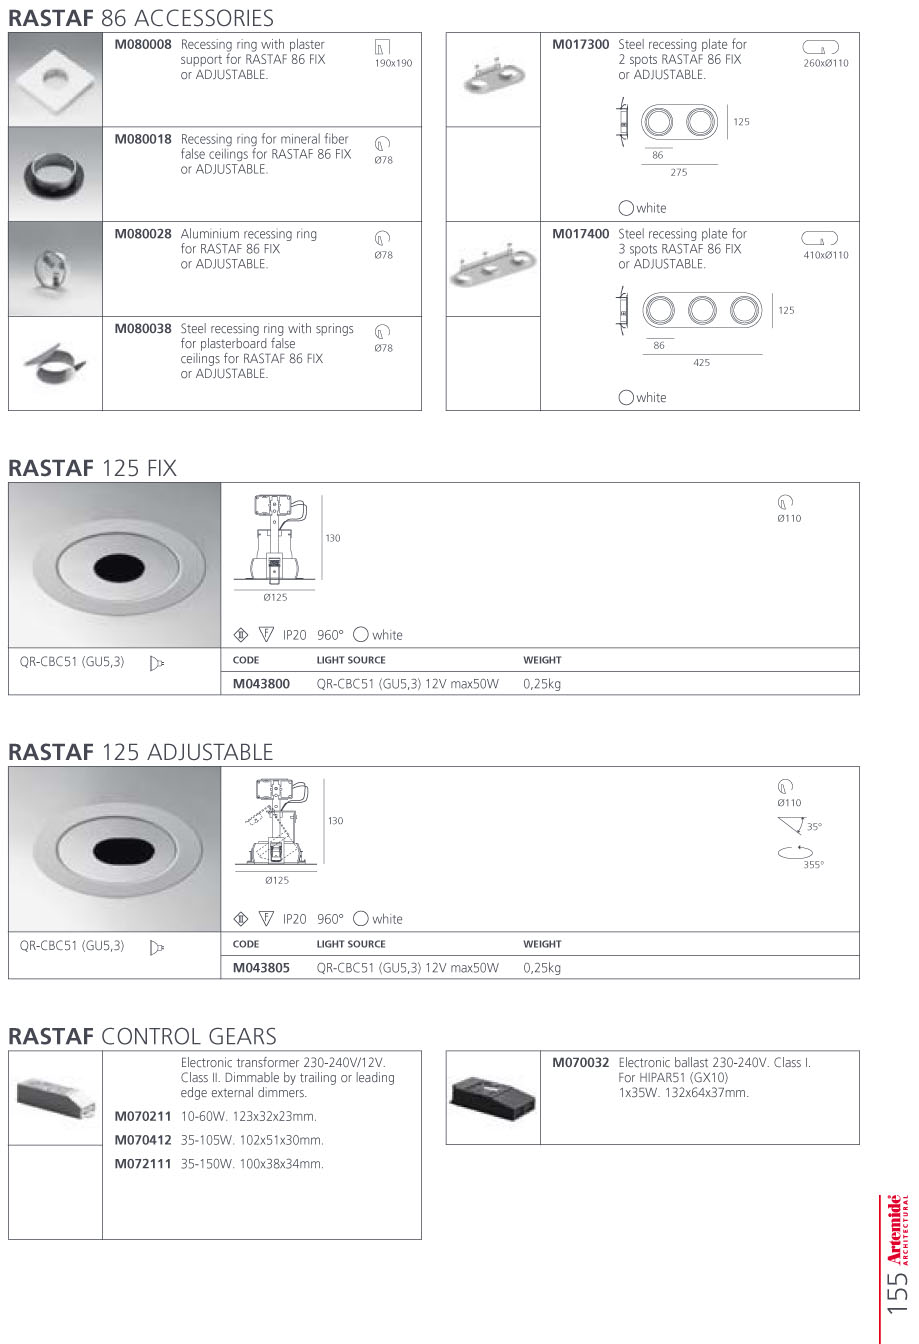 Rhornf 86 Accessory plate of Recessed of steel 275mm for 2 Spotlights white